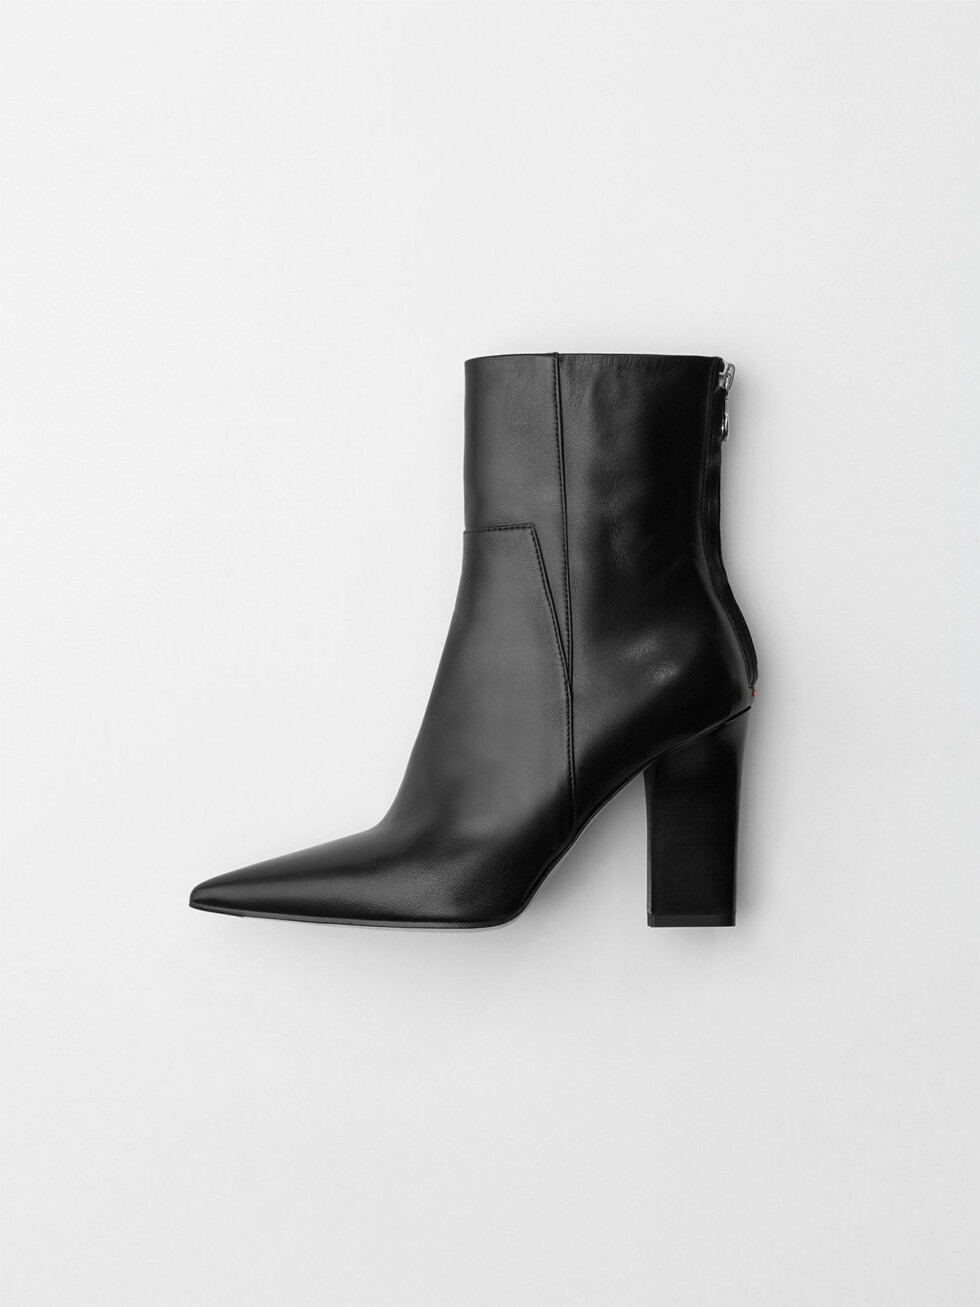 Aeyde |2800,-| https://www.aeyde.com/products/lizette-black-suede